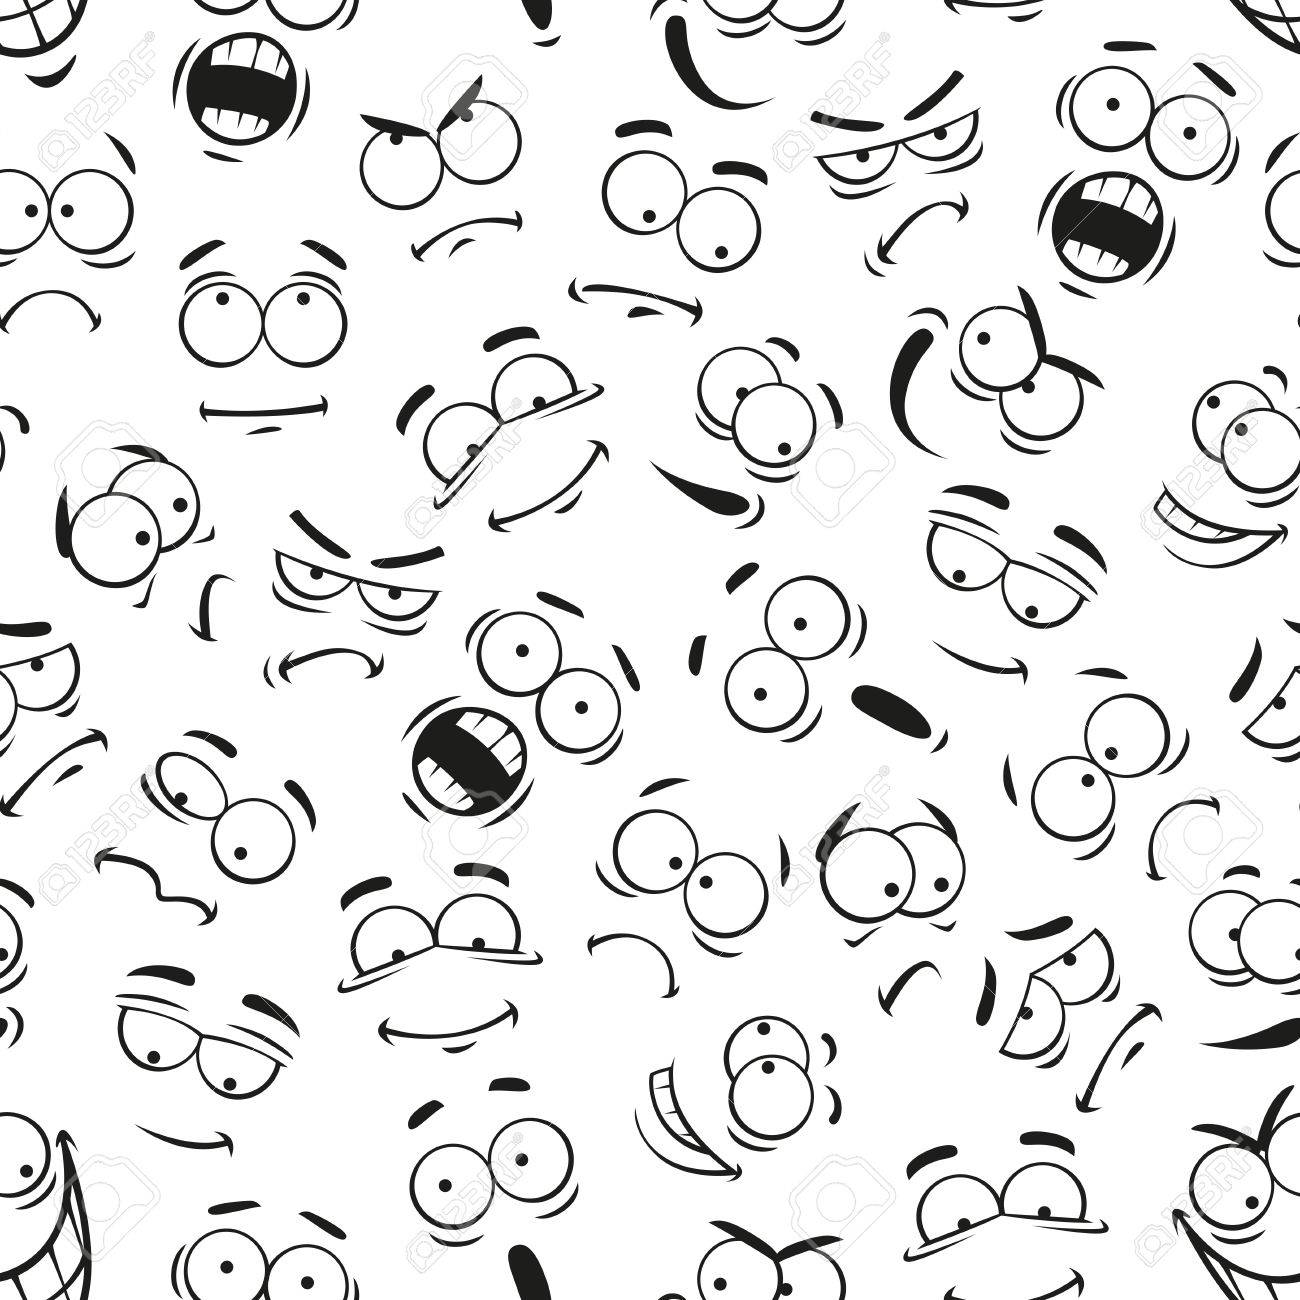 1300x1300 Human Face Expresions Pattern. Vector Pattern Of Cartoon Faces